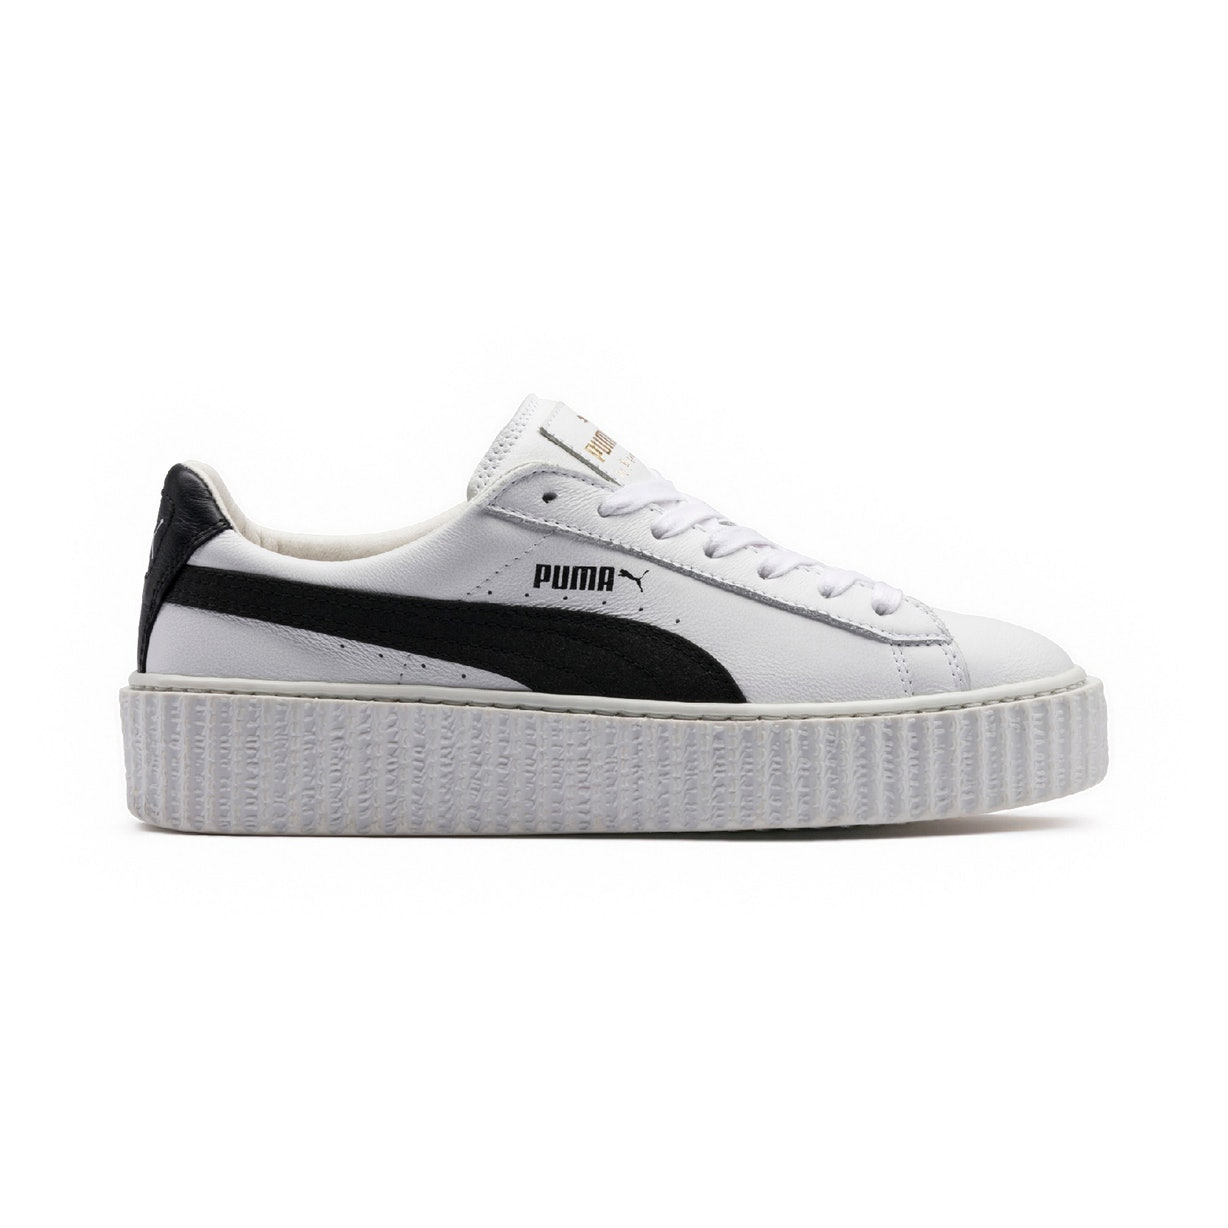 When Can You Buy The Fenty Puma Creepers With Ankle Straps  The Kicks Just  Got Another Upgrade cf6766d91